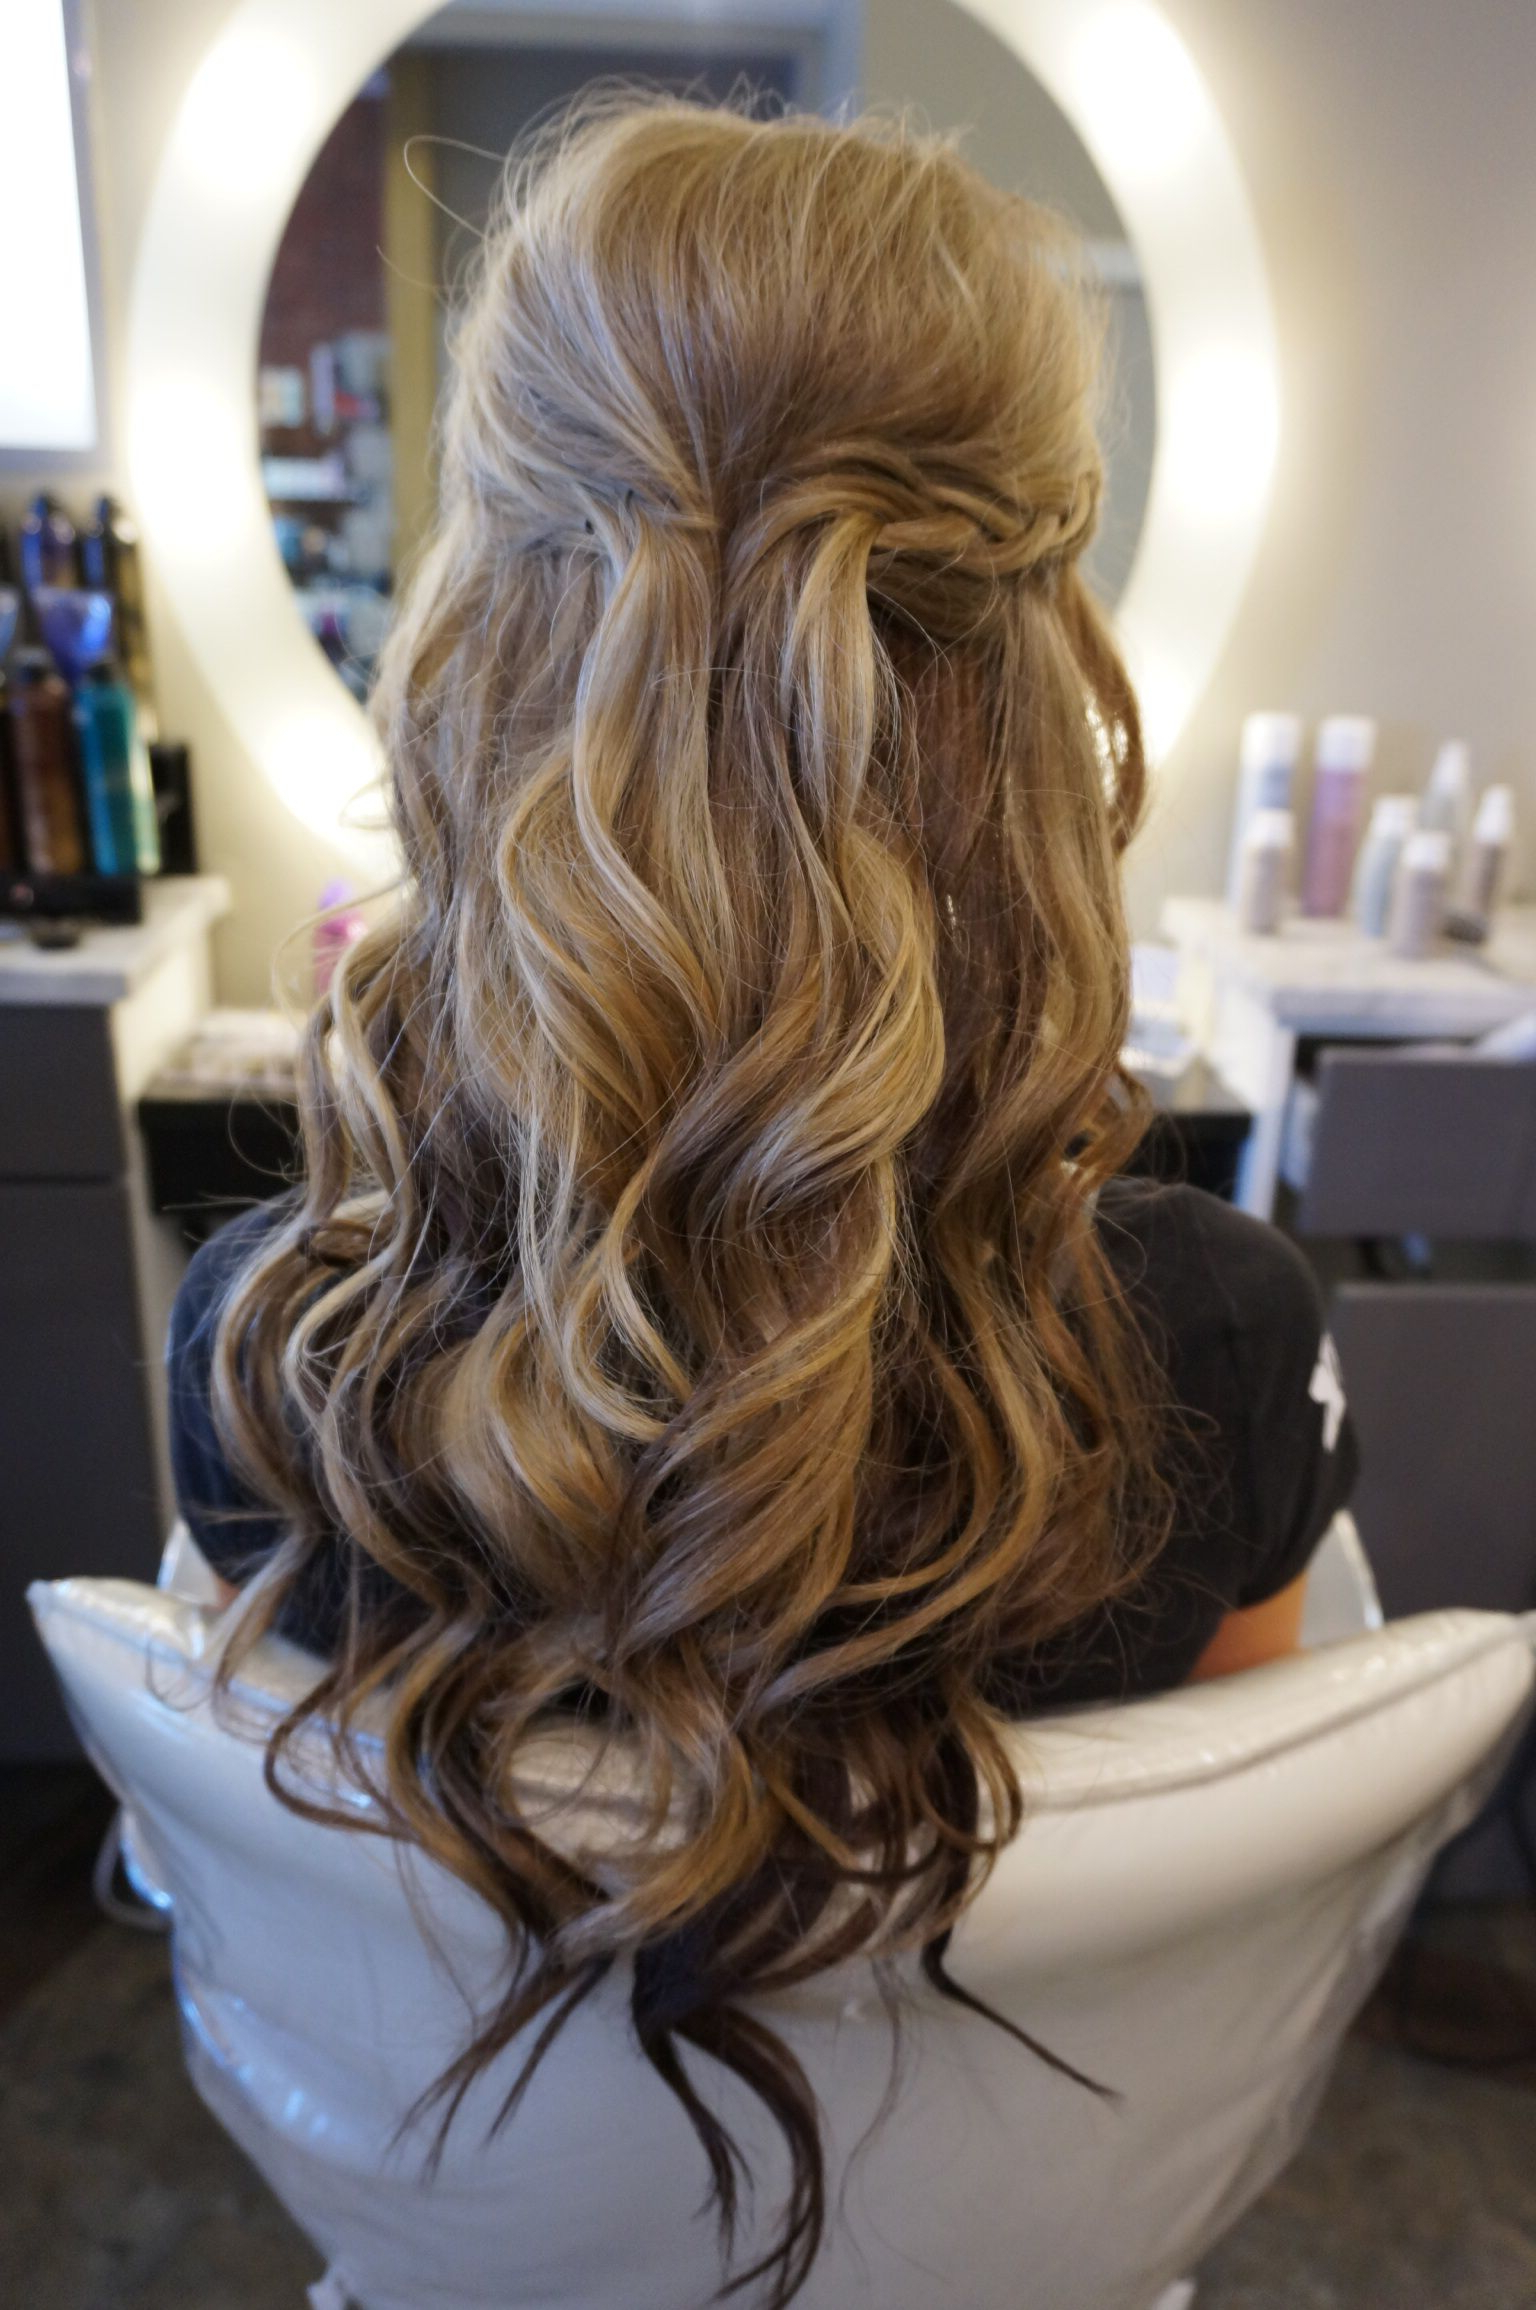 Most Popular Loose Flowy Curls Hairstyles With Long Side Bangs With Regard To Long Hair With Loose Curls Perfect Half Up Half Down Style (View 12 of 20)